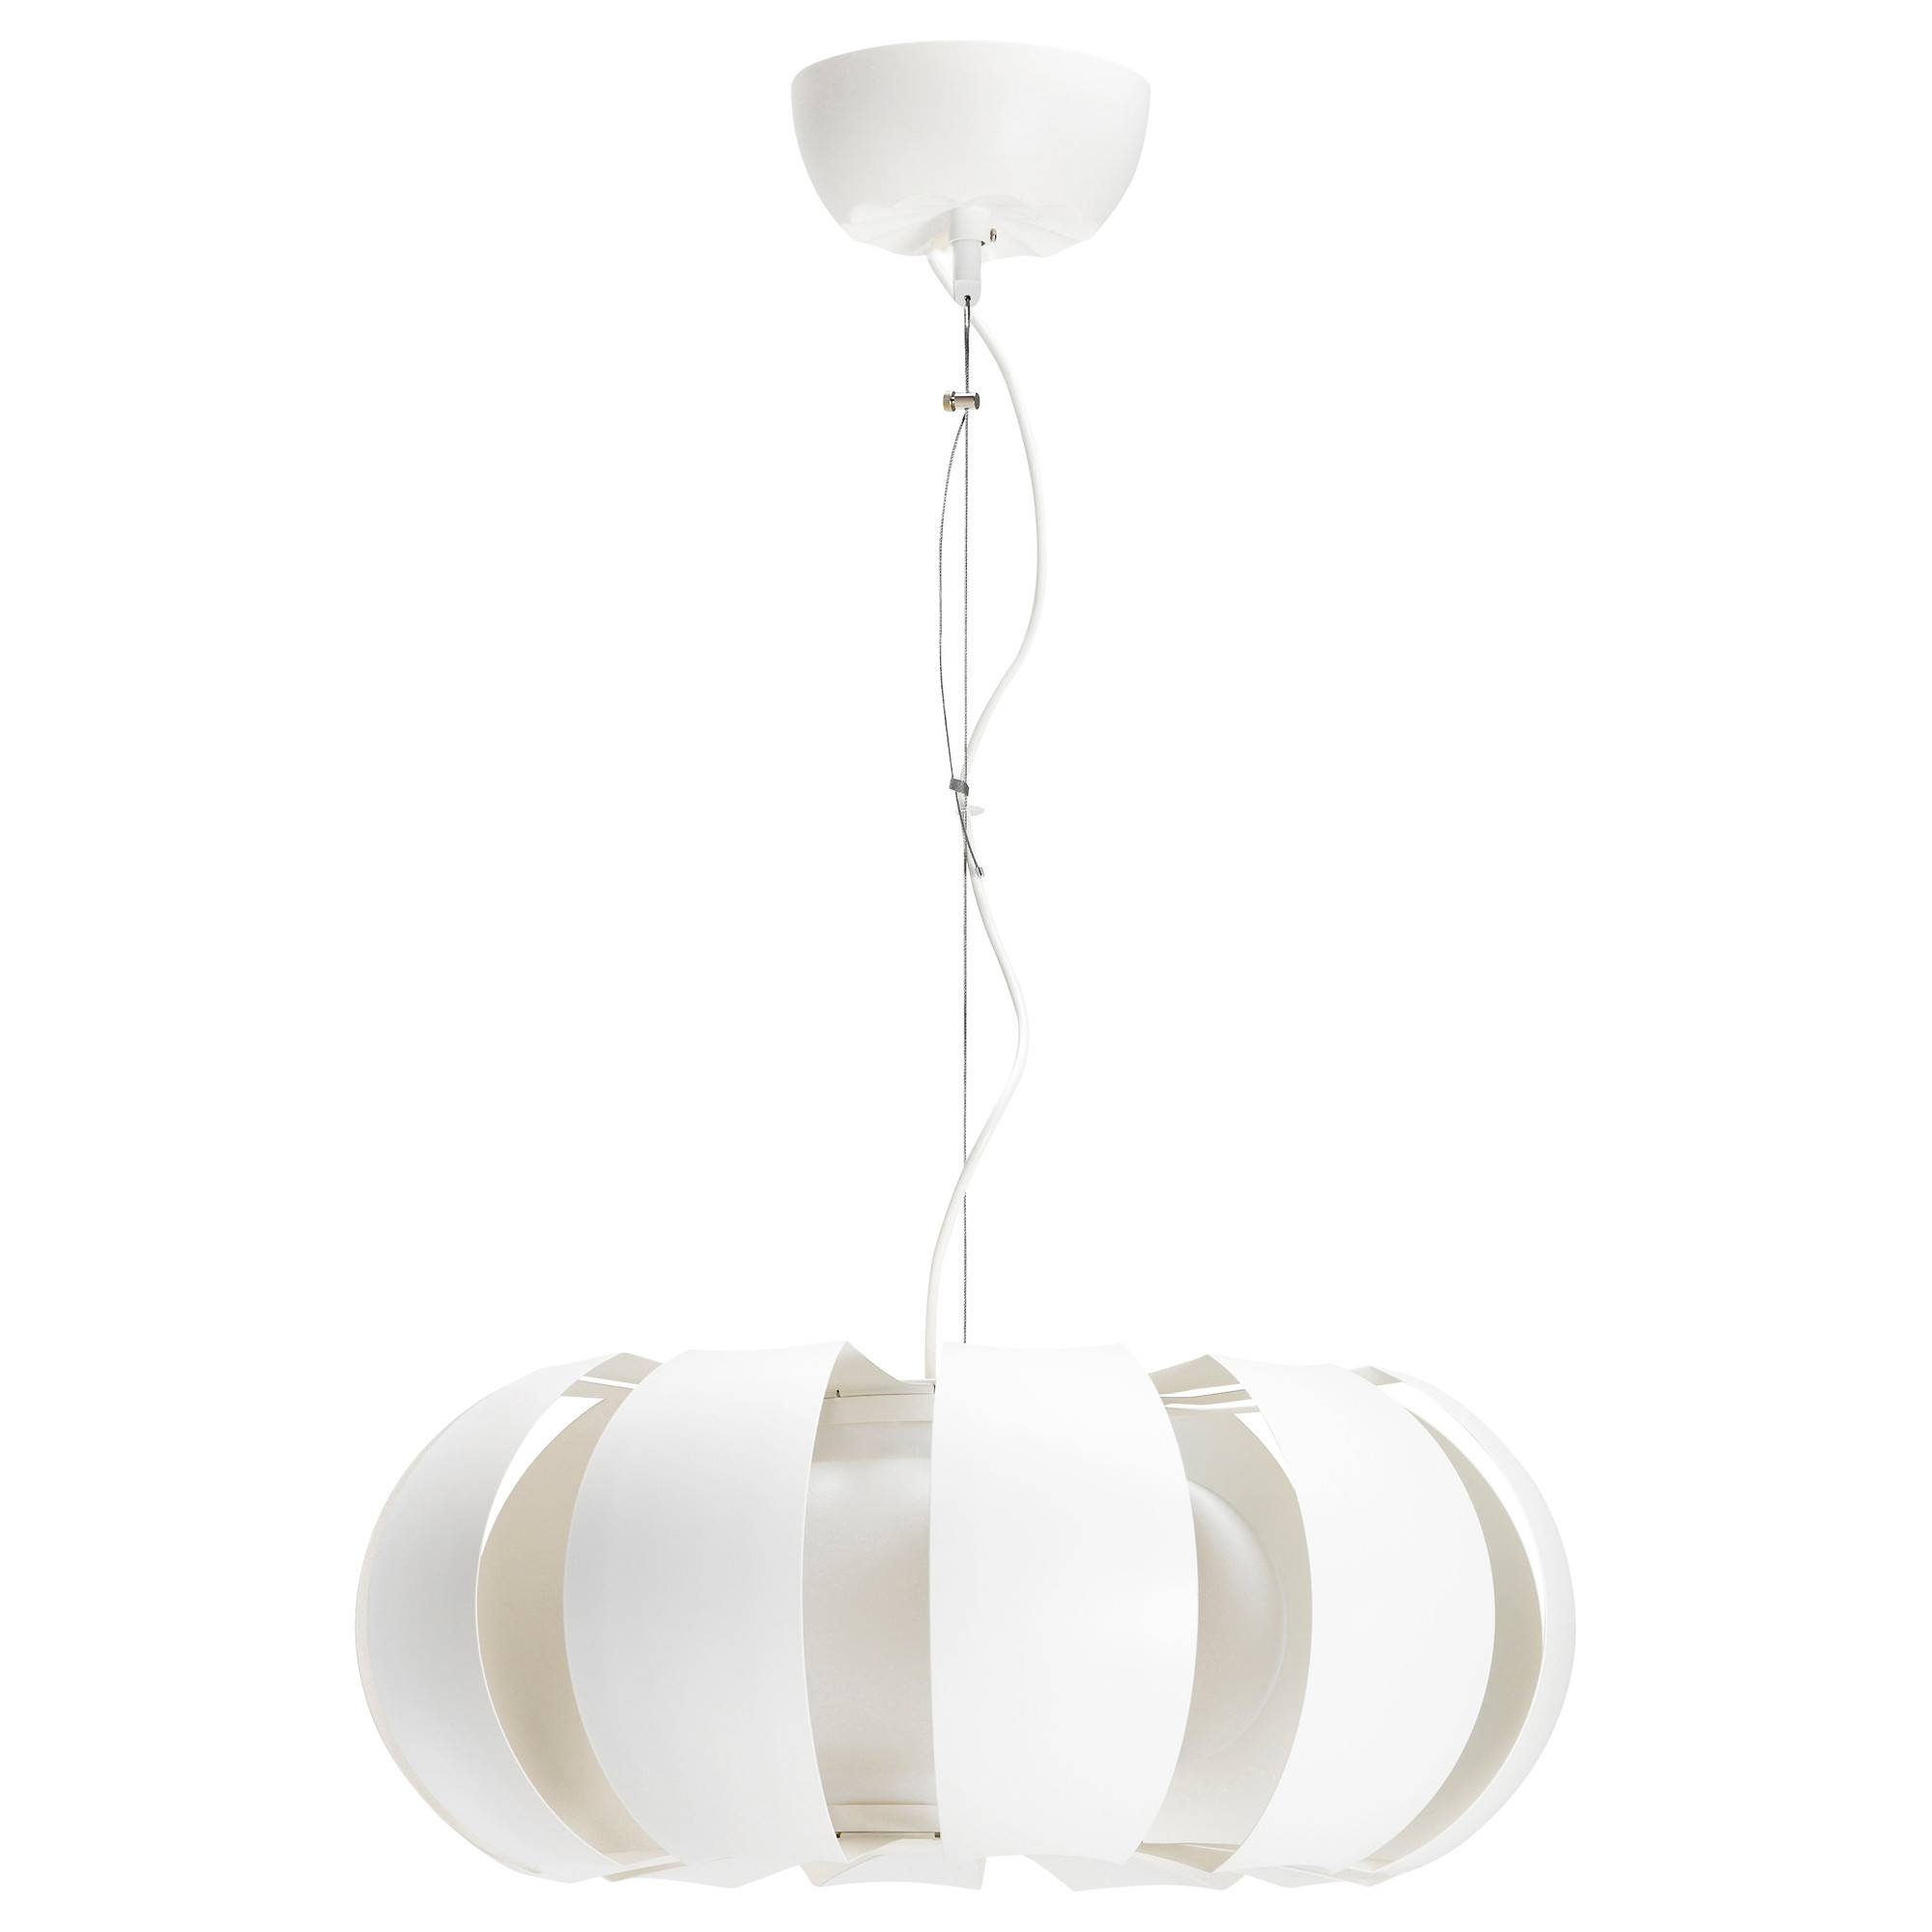 Ceiling Lights – Pendants, Spotlights & More - Ikea within Ikea Pendant Light Kits (Image 2 of 15)